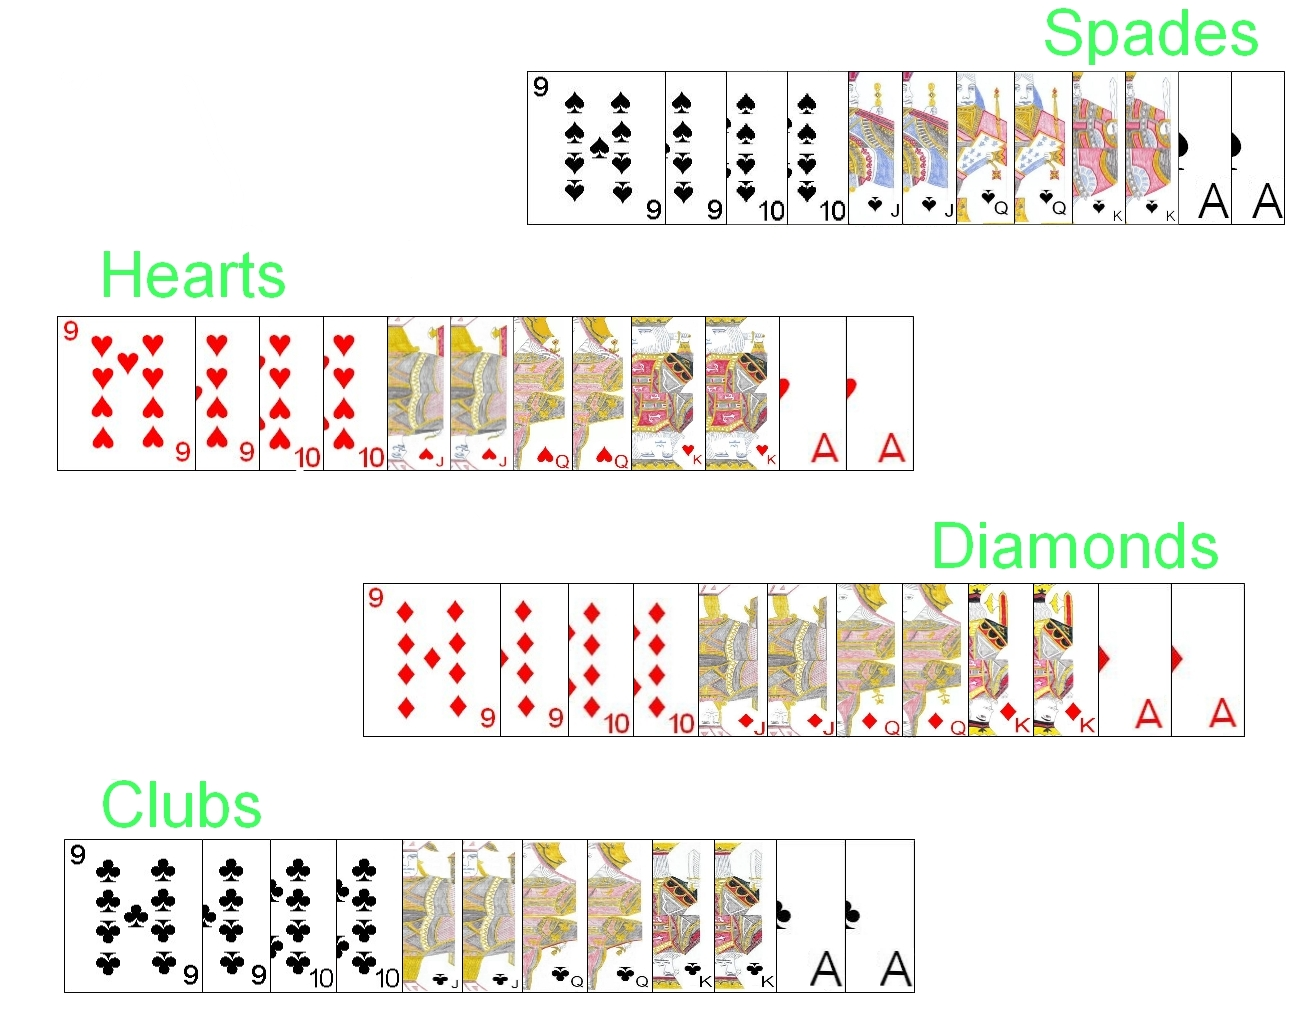 the deck of cards